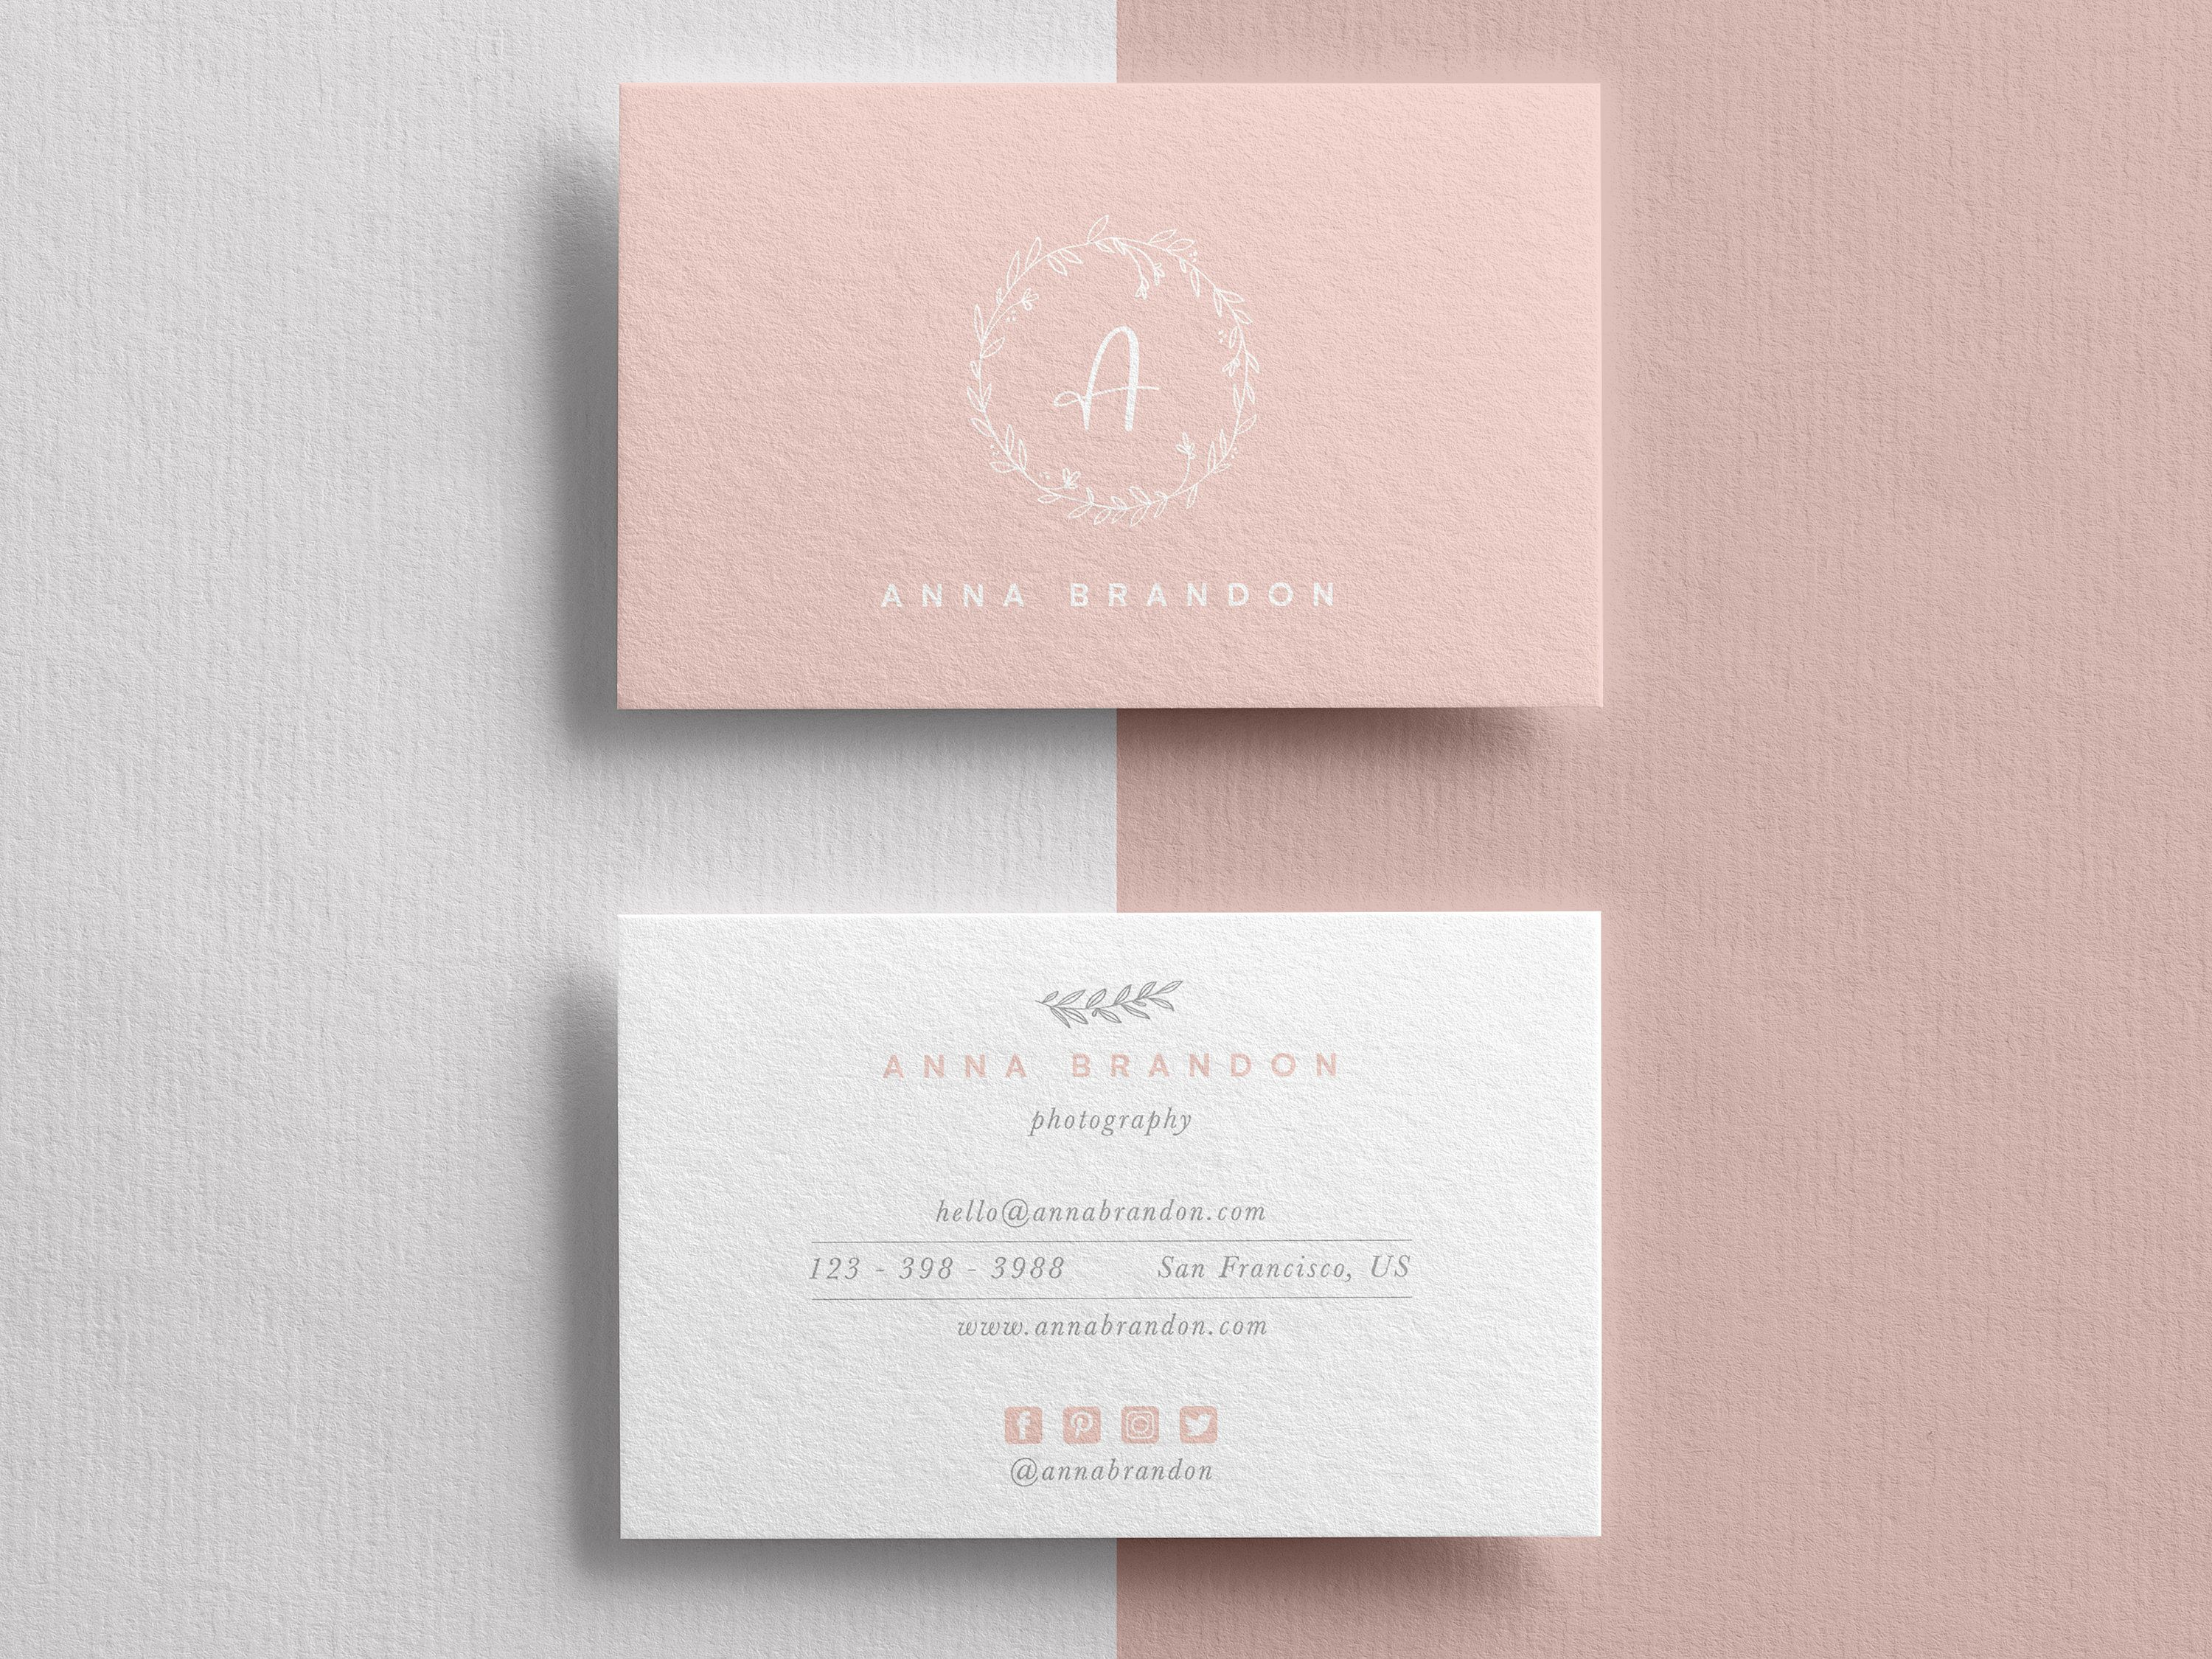 Elegant Watercolor Business Card, Feminine Business Card Template, DIY Template, Instant Download, Editable Business Card, DIY Business Card is part of Watercolor business cards, Photography business cards template, Diy business cards, Calling card design, Photography business cards, Elegant business cards - 2I40rFw  THIS ITEM INCLUDES  • Two welllayered and organized  PSD files (Front and Back of Business Cards) • Print Size 3 5 x 2  (Bleed size 3 75  x 2 25 ) • Read Me File with Free Download Fonts  PLEASE NOTE  • These Files are ADOBE PHOTOSHOP Files, they don't work in MS Word or any other software  • You should have a basic knowledge of layers, clipping masks and smart objects  • This is an instant digital download — no physical products will be sent to you  • Purchasing our templates give you the right to use only for personal or business use  • You have no rights to resell, redistribute or share these templates in whole or in part for any reason whatsoever   • By purchasing our templates, you accept the terms and conditions — due to the digital nature of this product, no refunds will be given  • The Photos of the listing are mockups and they are NOT included in the templates  •  ThoughtAndCreation's is NOT responsible for any print errors and does not provide any 3rd party print lab or at home printer support  Copyright 2019 ThoughtAndCreation©